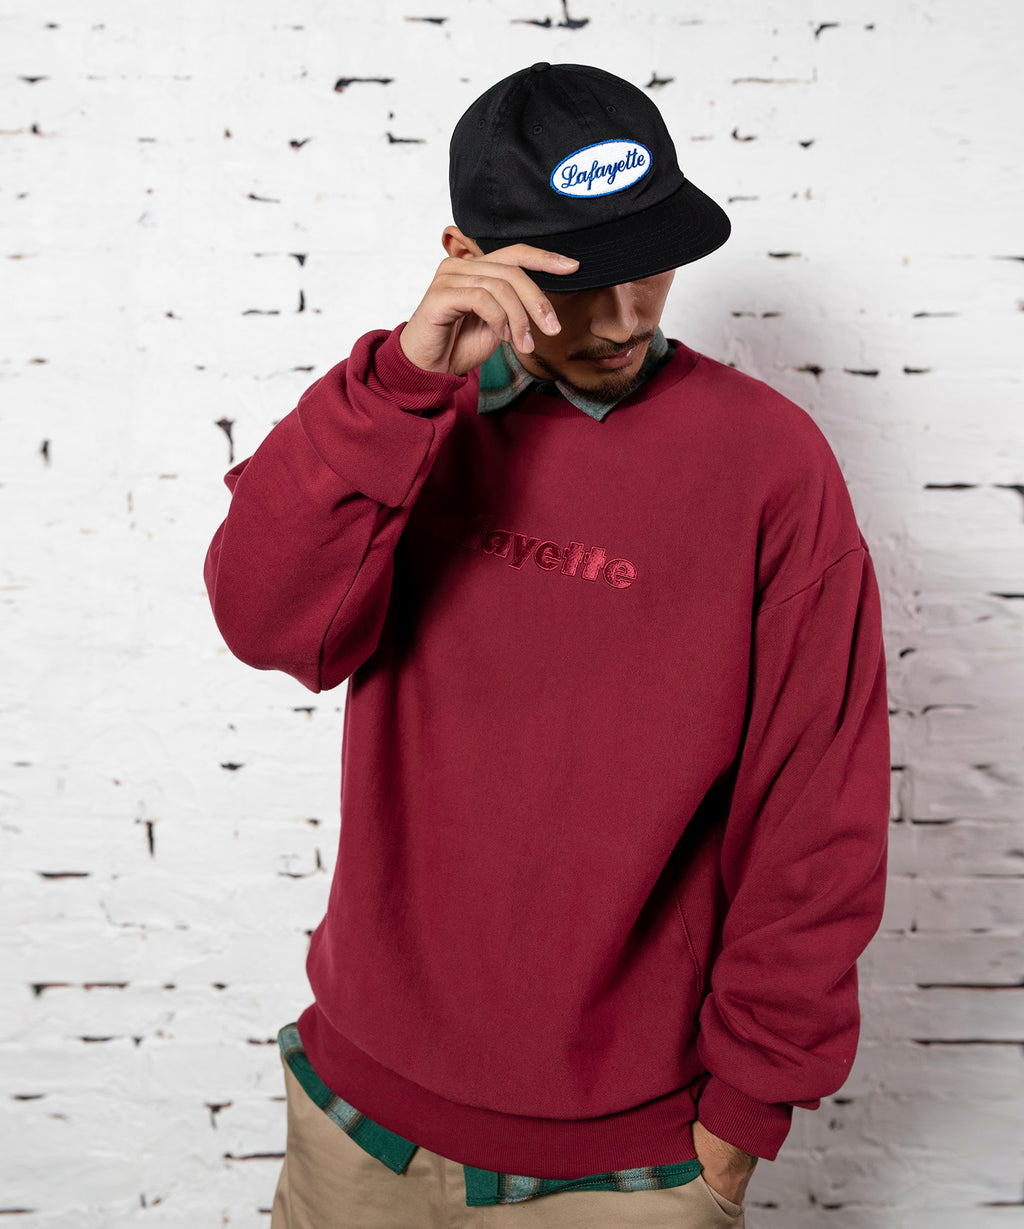 TONAL LOGO US COTTON CREWNECK SWEATSHIRT BURGUNDY LA200702